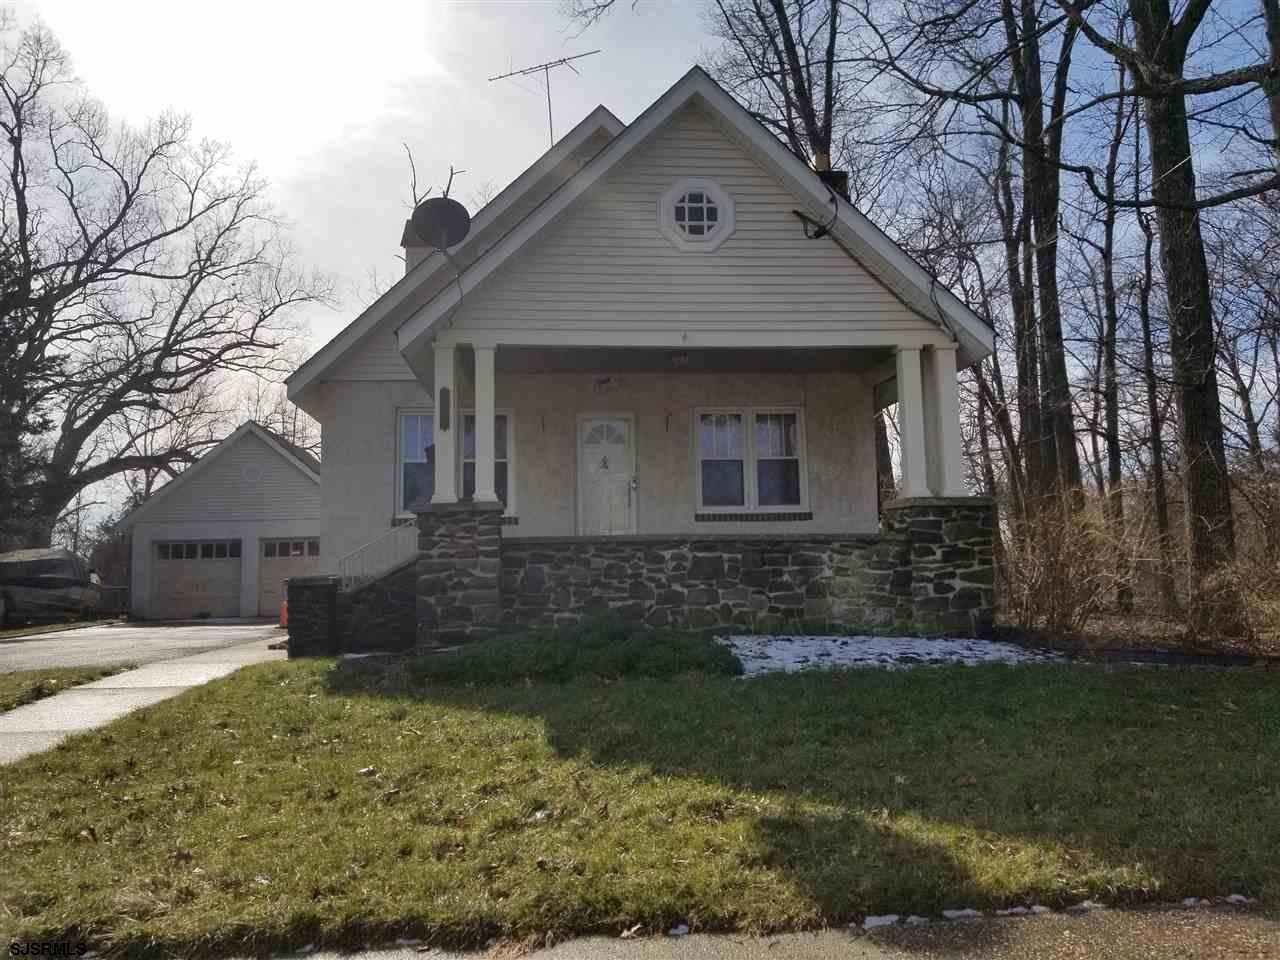 Best 5908 3Rd St Hamilton Township Nj 08330 3 Bedroom House For Rent For 1 650 Month Zumper With Pictures